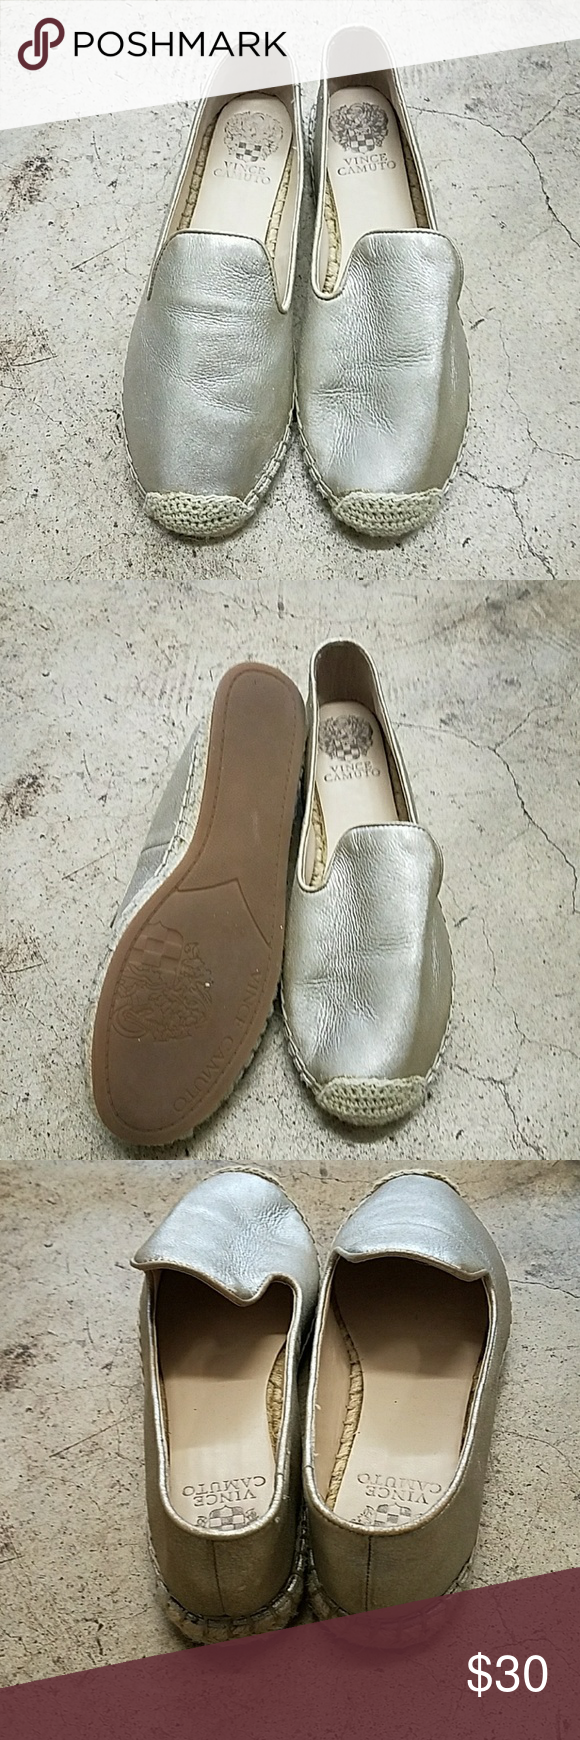 Vince Camuto flats Worn only a gew times. Great condition. Vince Camuto Shoes Flats & Loafers